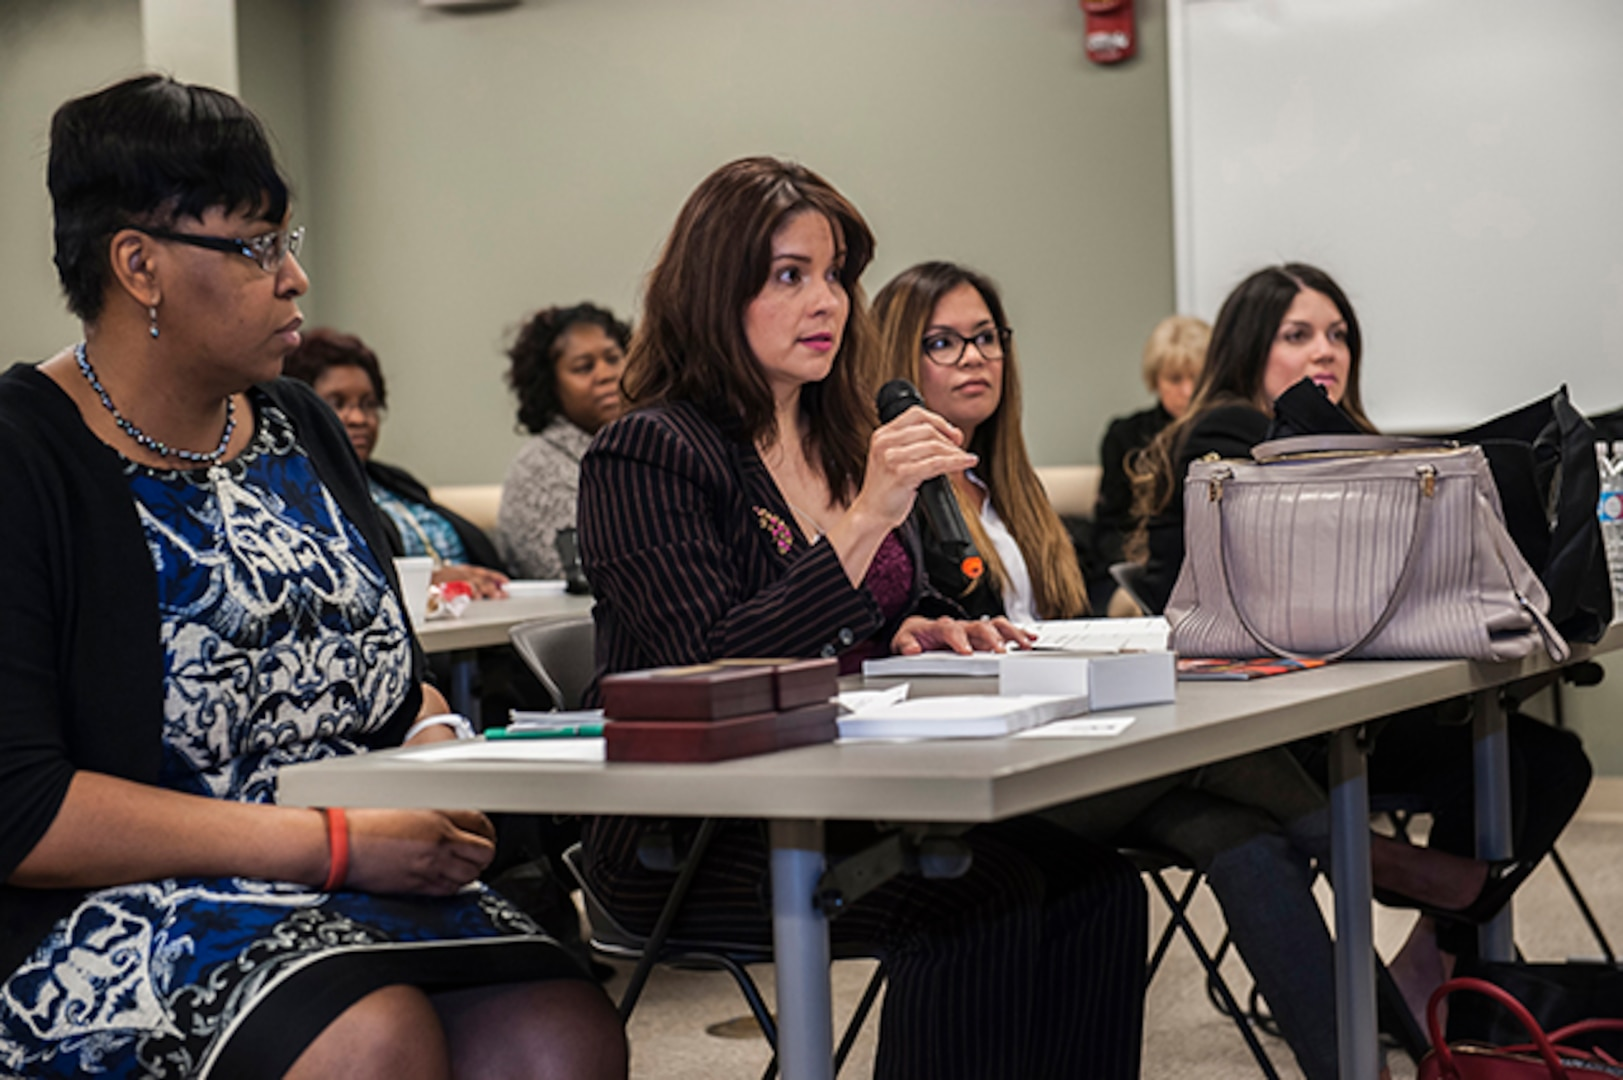 An attendee asks a question to a panelist at Defense Supply Center Columbus' Women's Leadership Summit March 23 in the Armed Forces Reserve Center (Building 2). The summit offered two workshops and a panel of four extraordinary women with diverse backgrounds in military, government and public service, sharing their career experiences to enable participants to enhance their leadership skills.